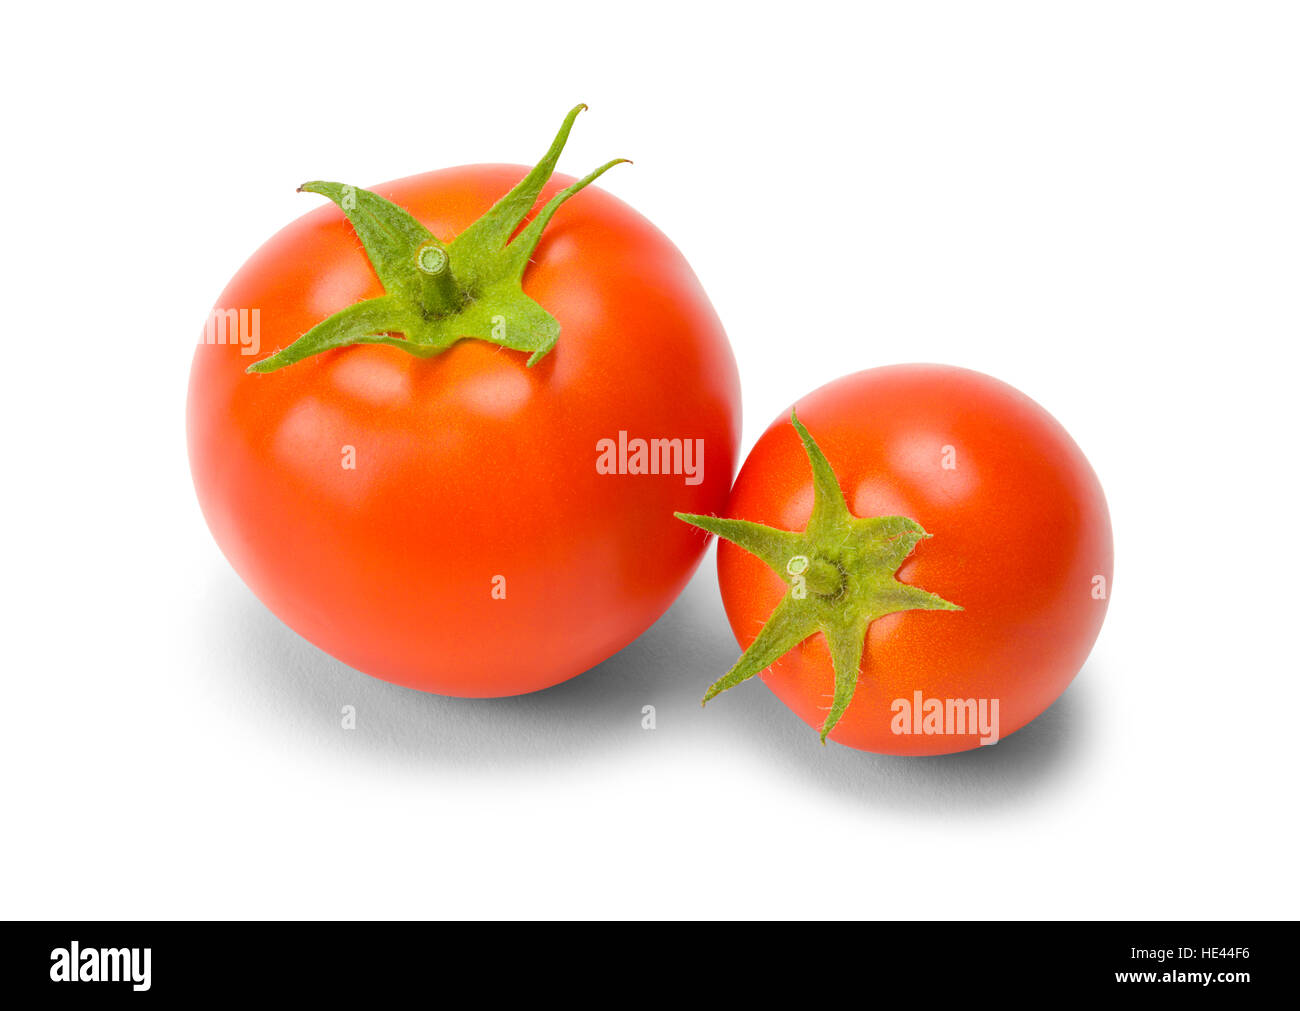 Two Red Tomatoes Different Sizes Isolated on White Background. - Stock Image